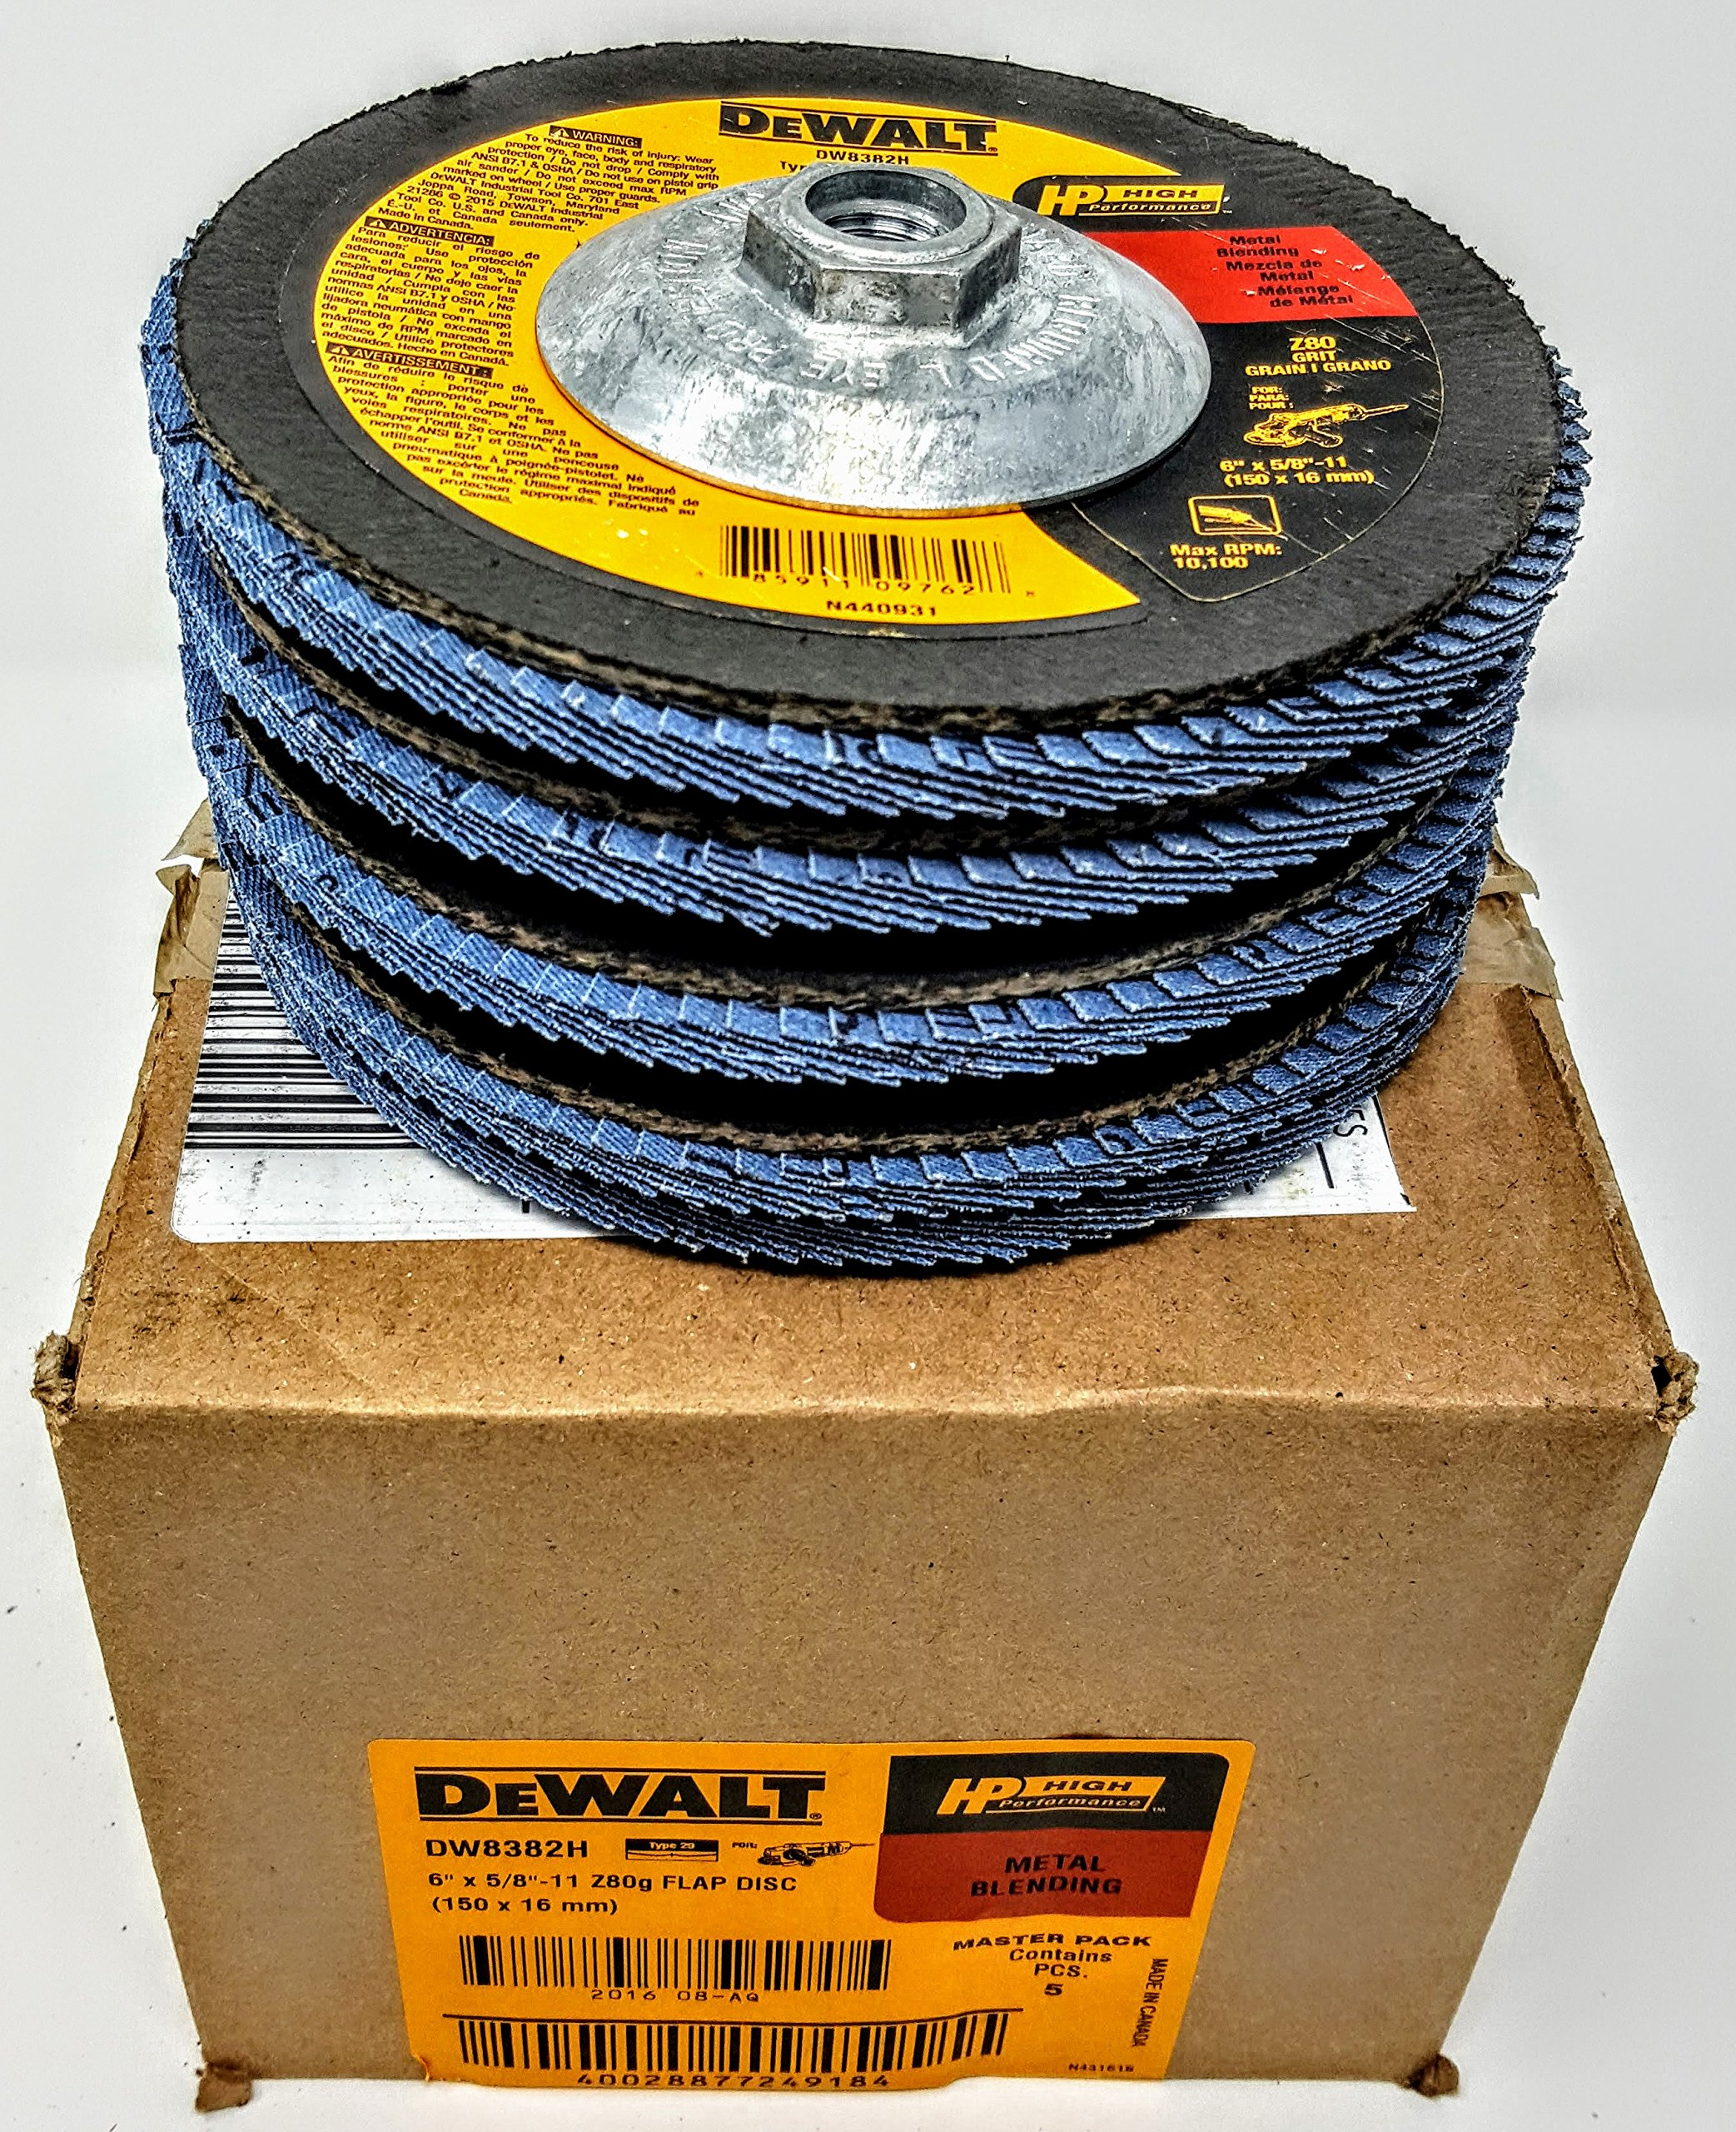 (Box of 5) Dewalt DW8382H 6''x 5/8''-11 Hub Z80 grit T29 High Performance Flap Discs